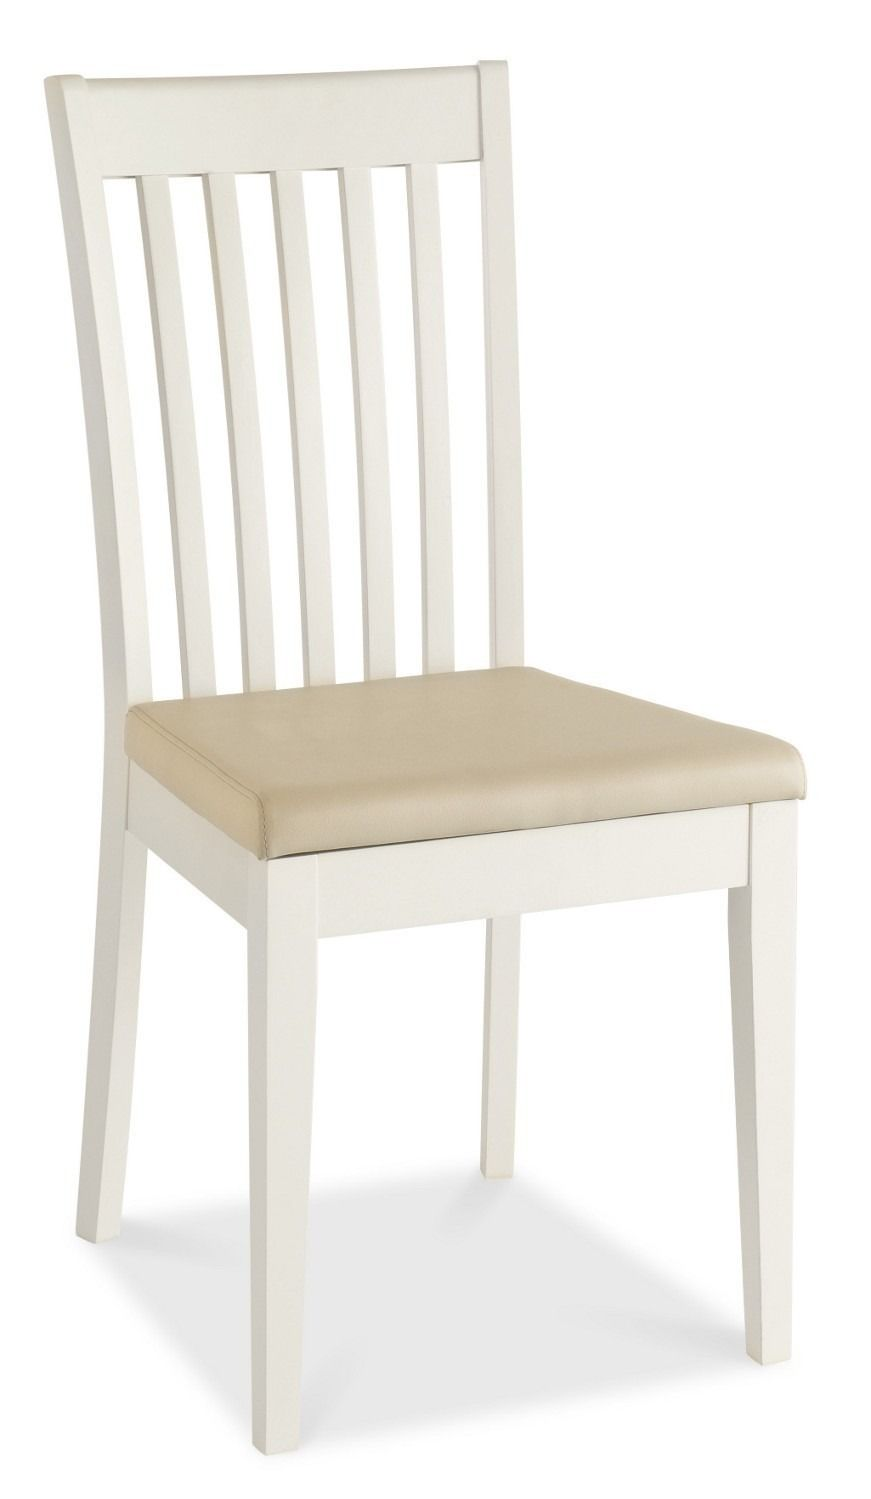 Shaker Two Tone Slatted Dining Chairs - Beige Seat Pad - Crafted ...